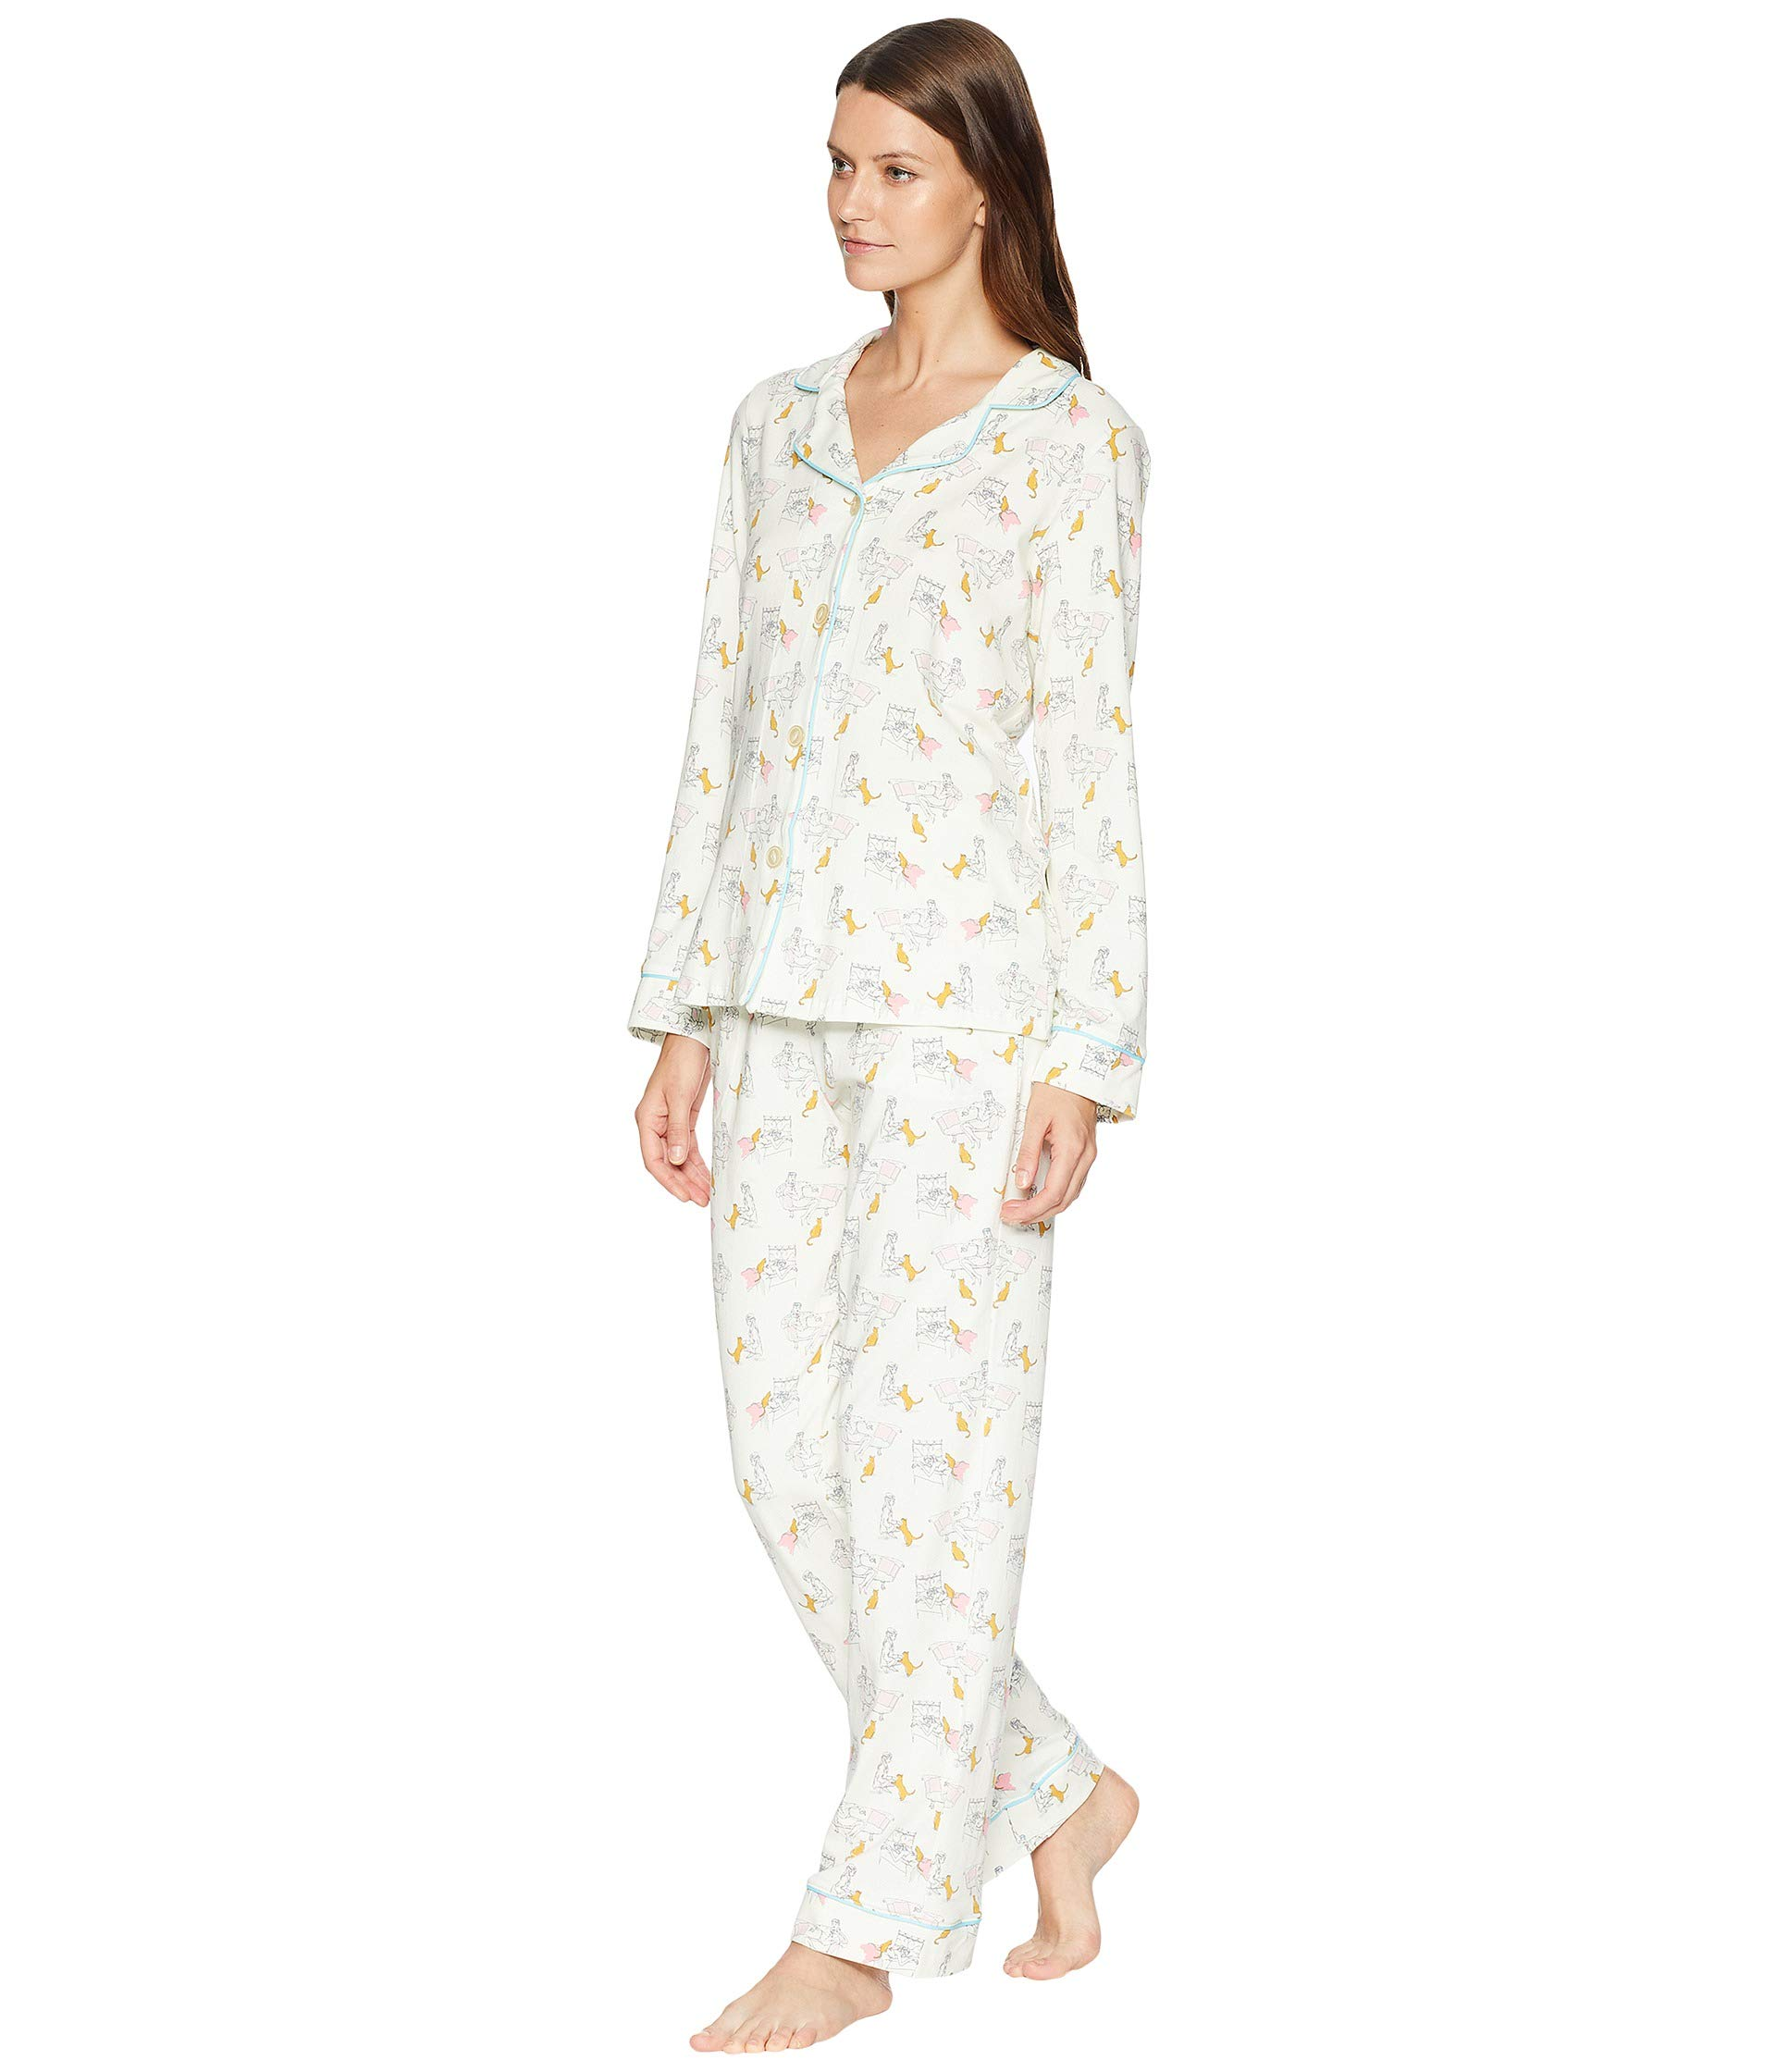 Notch Bedhead Holly's Classic Pajama Cats Set Collar r5FCx4w8qF